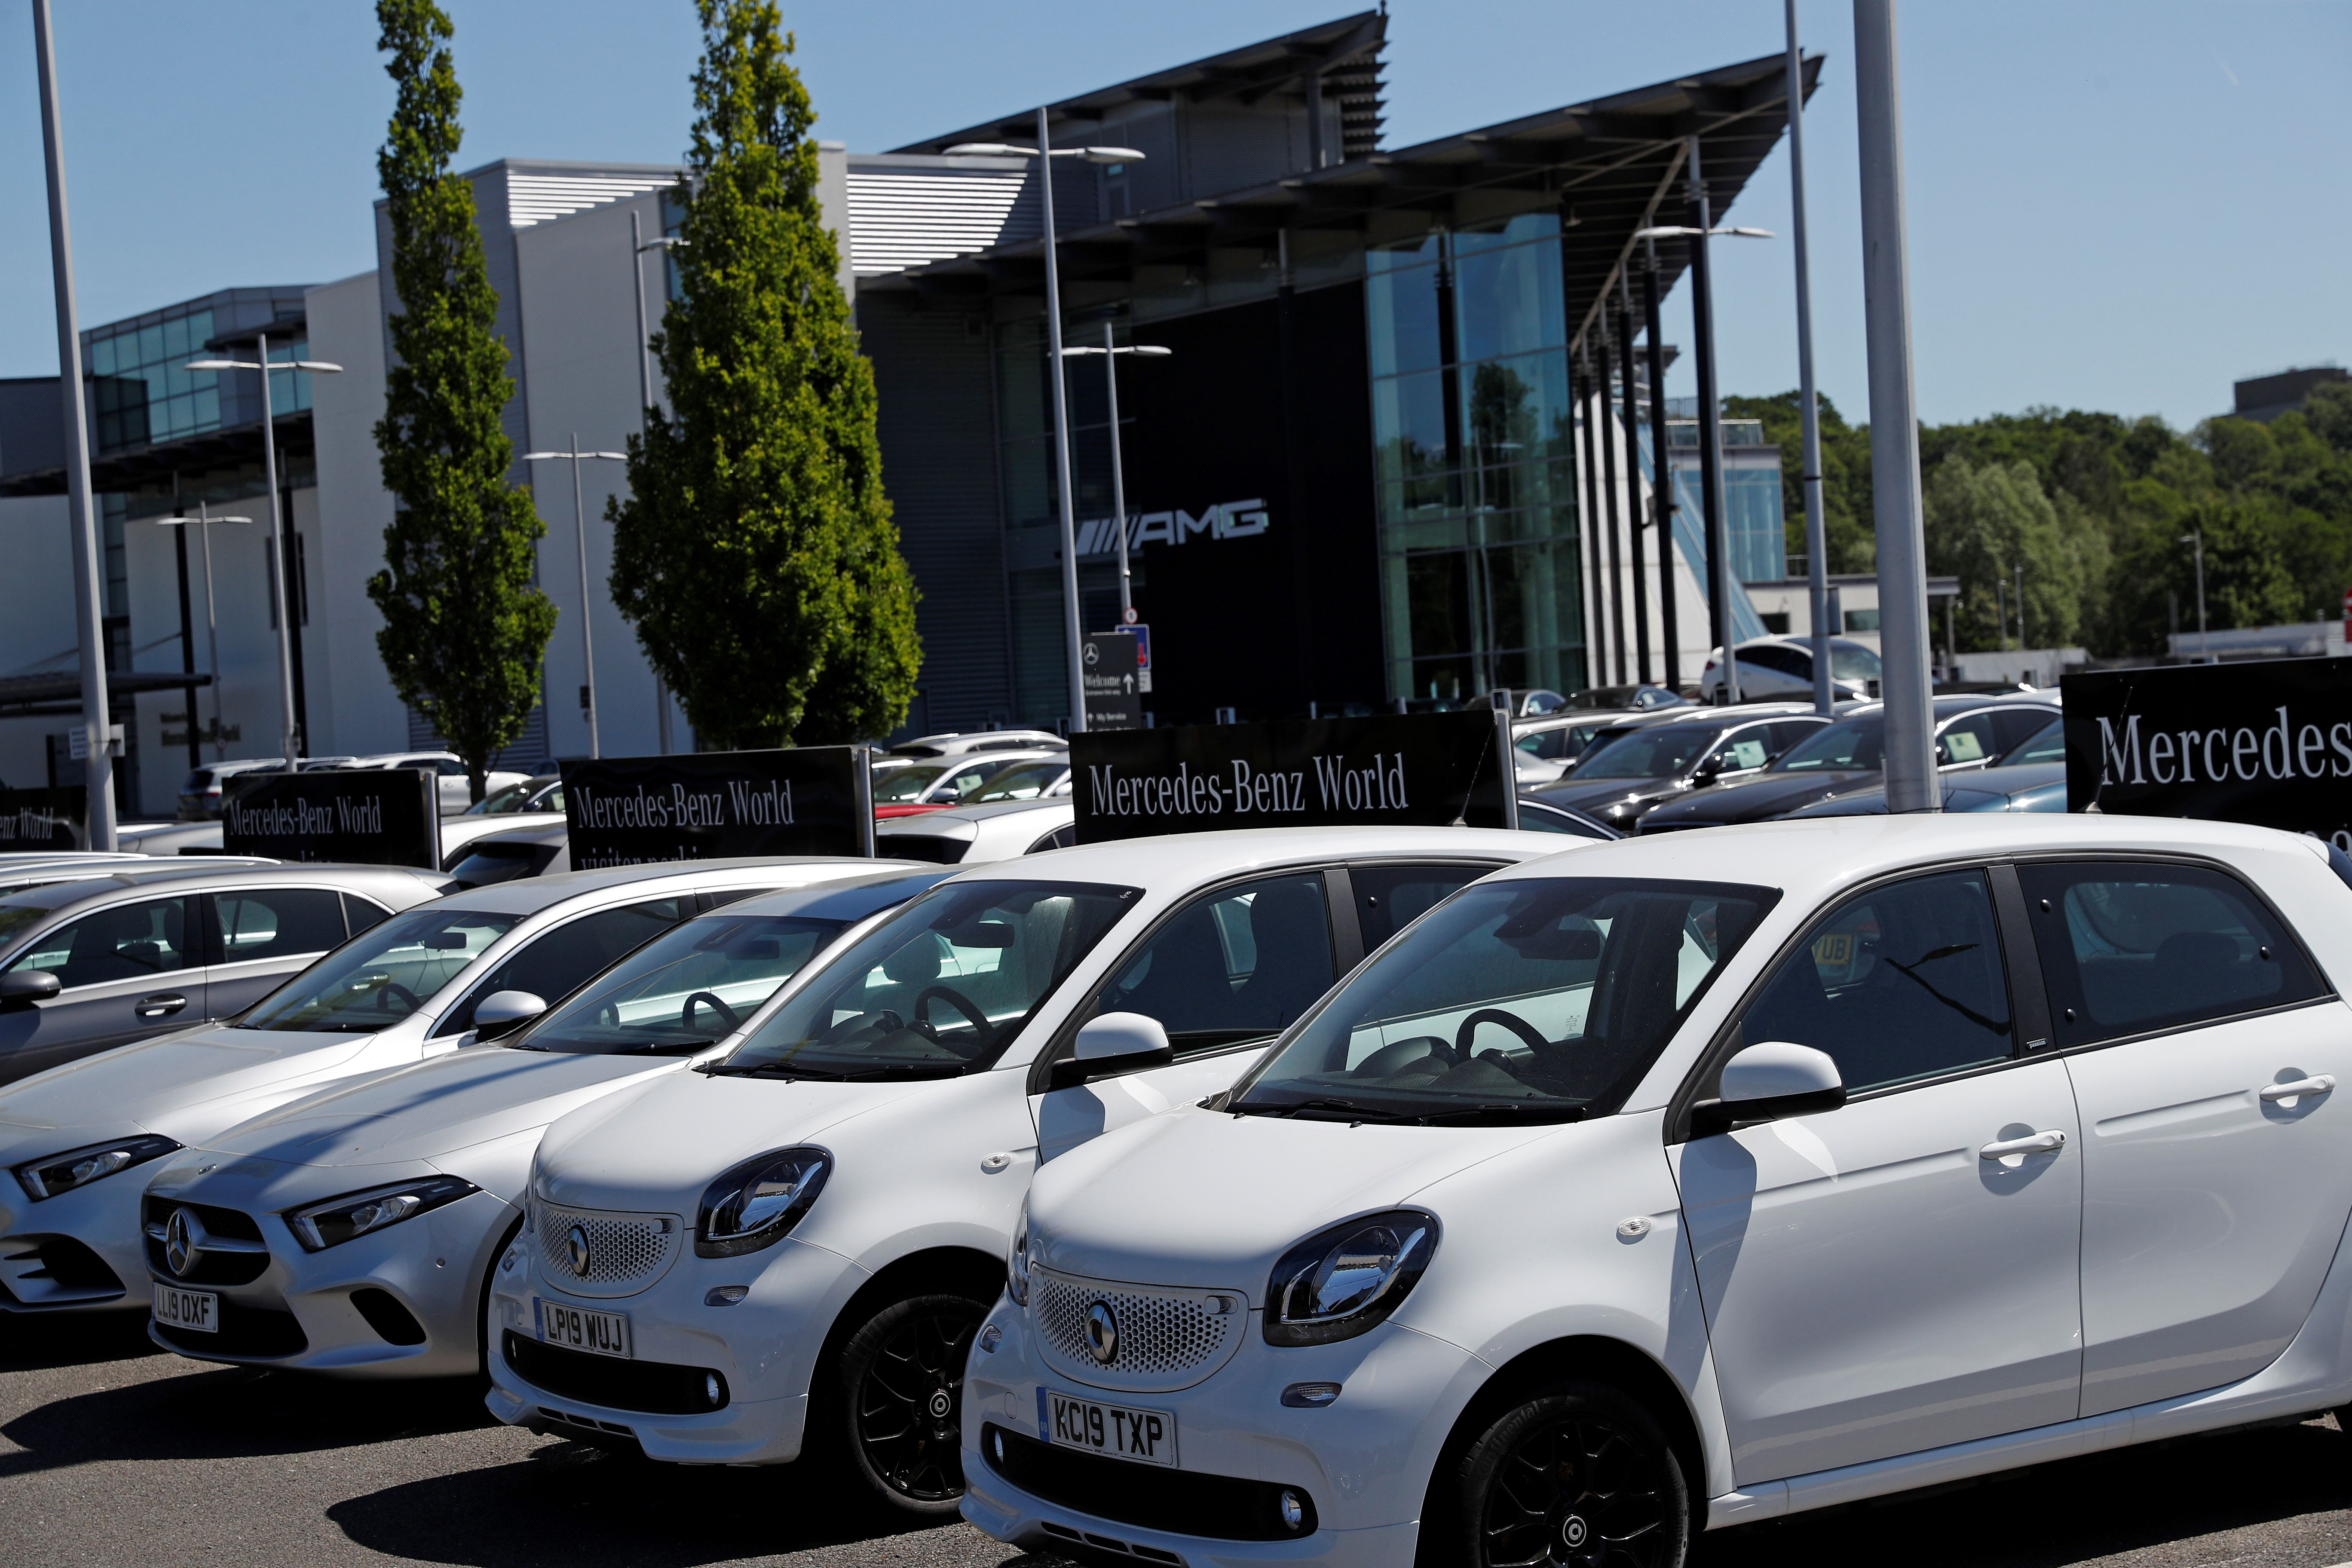 New and used cars are on show at a Mercedes-Benz Brooklands and Mercedes-Benz World car dealership near Woking, southwest England on May 29, 2020. - The motor trade is calling for the UK to introduce a car scrappage scheme to help jump-start the economy and replace older, more polluting models. (Photo by ADRIAN DENNIS / AFP) (Photo by ADRIAN DENNIS/AFP via Getty Images)